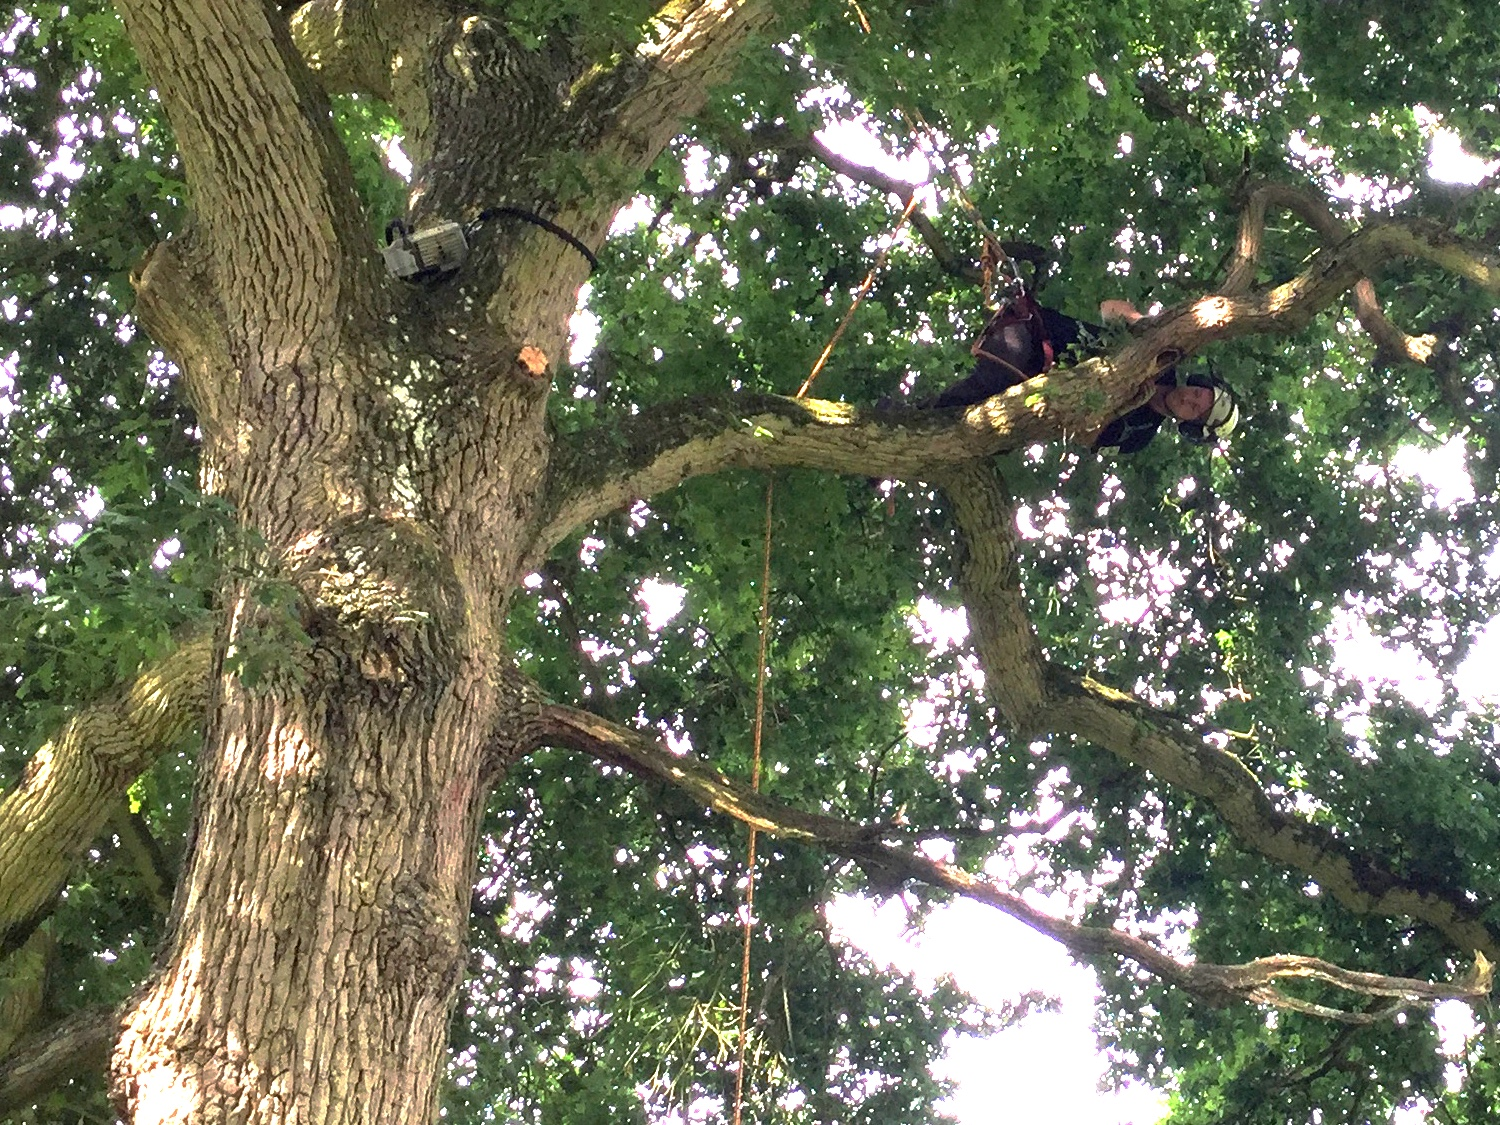 Aeriel tree inspection